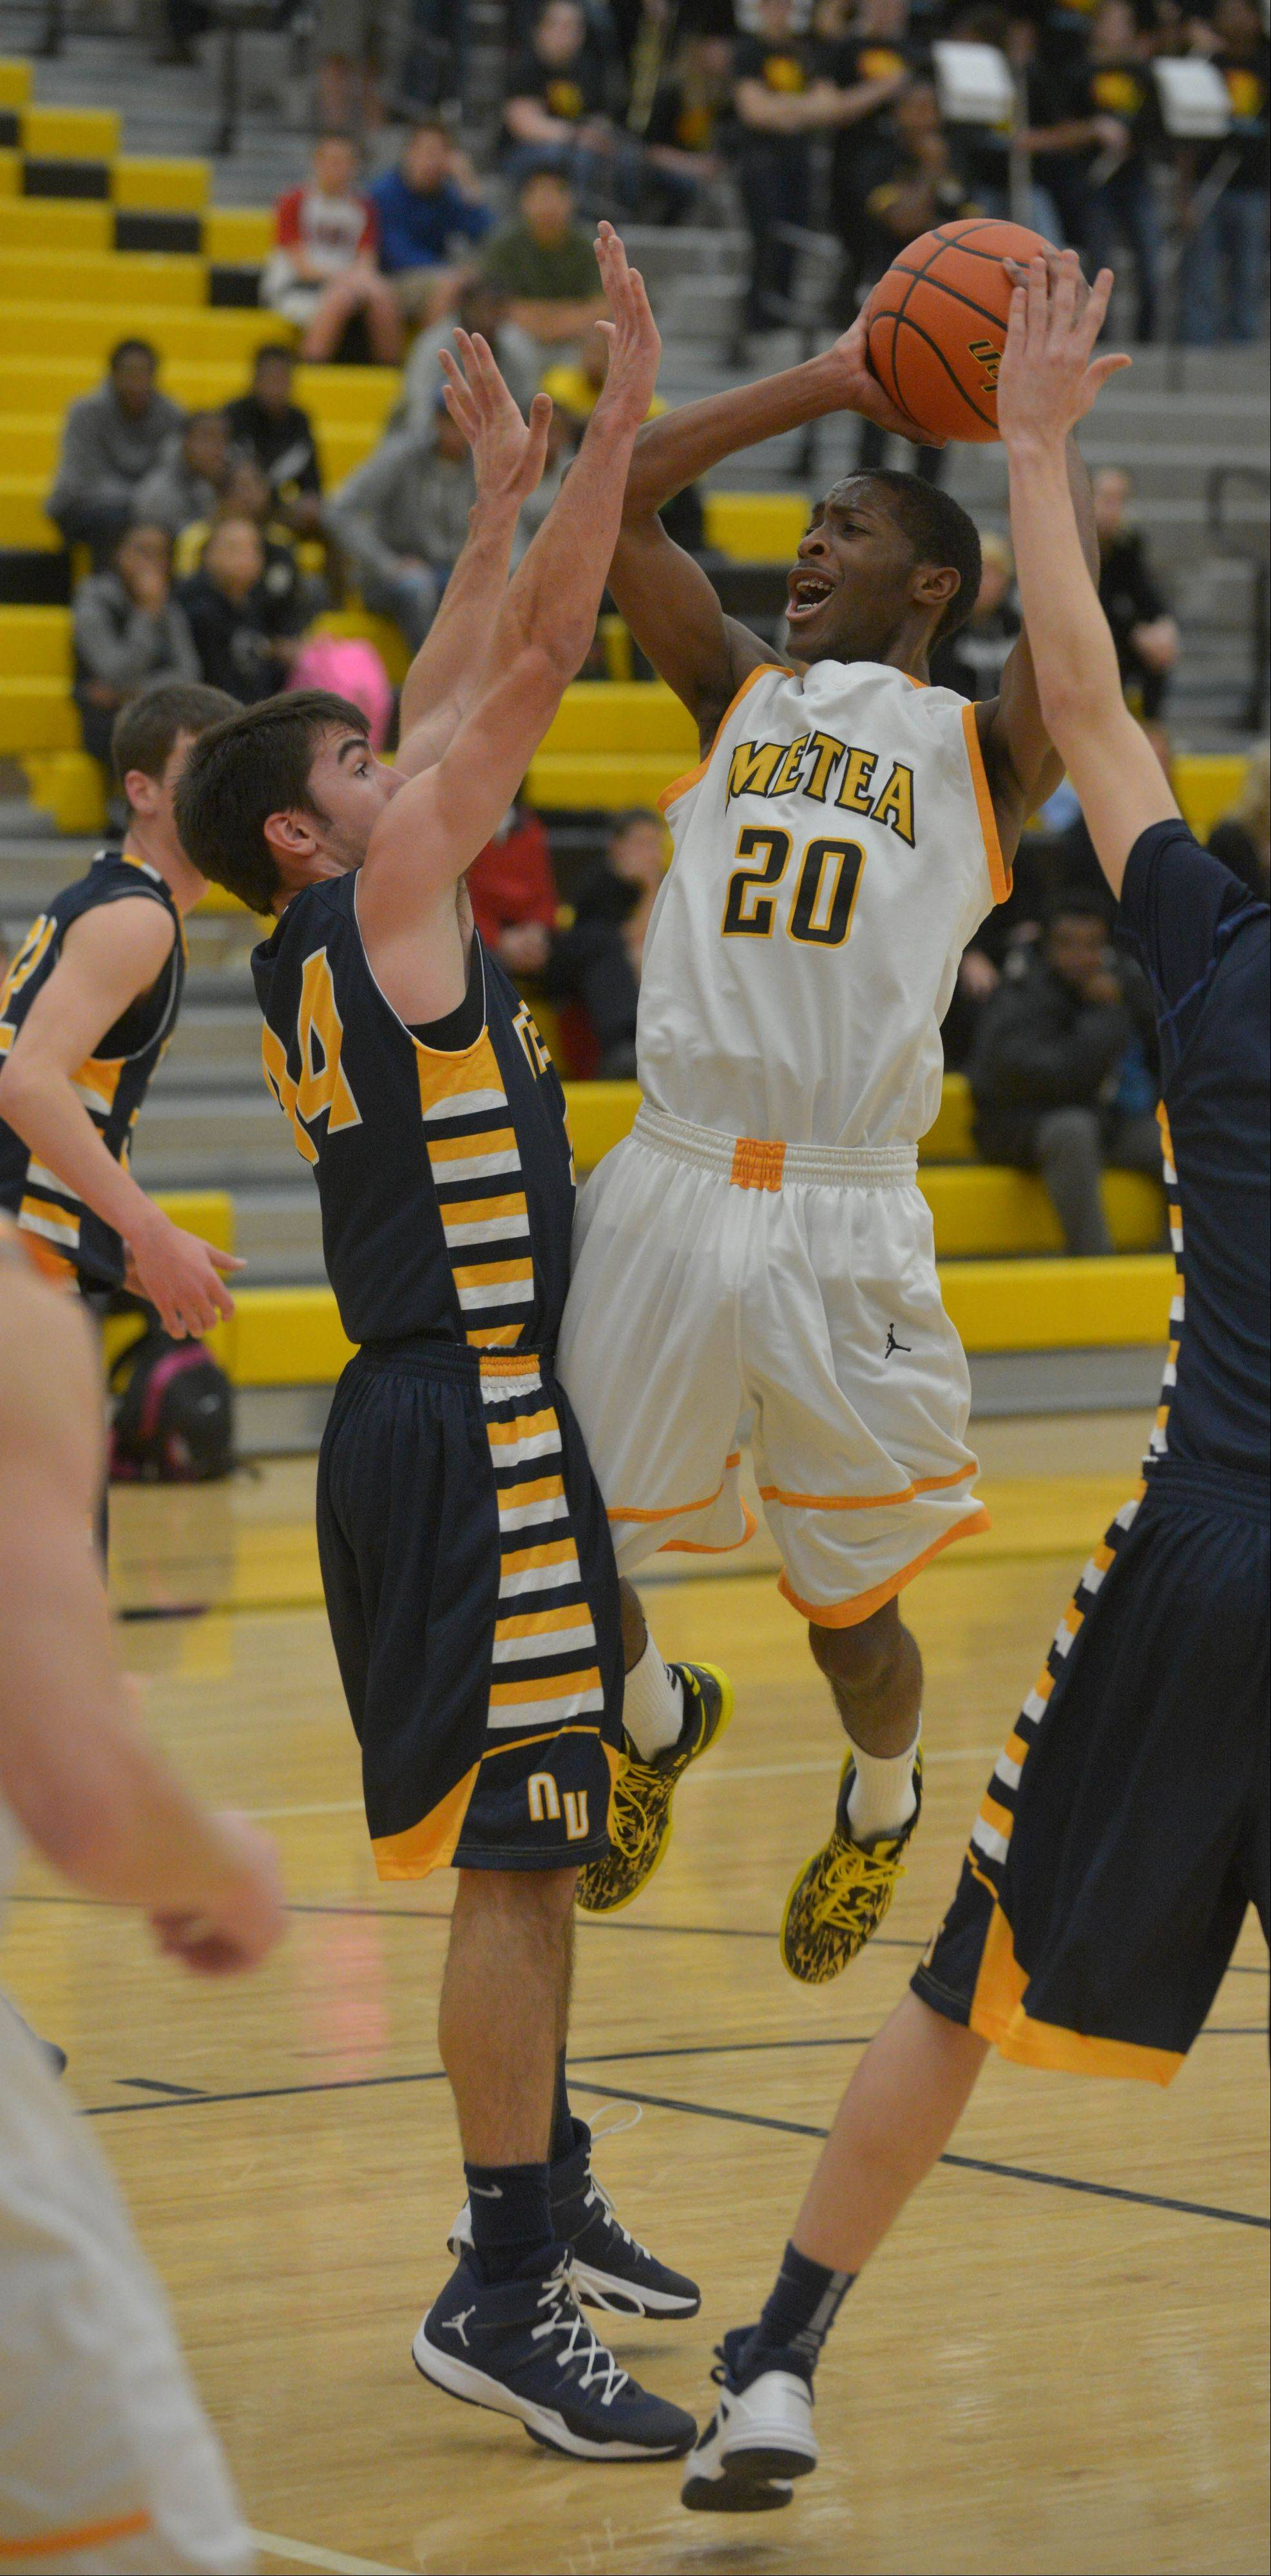 Marquell Oliver of Metea Valley takes a shot while Josh Piotrowski of NeuquaValley during the Neuqua Valley at Metea Valley boys basketball game Thursday.